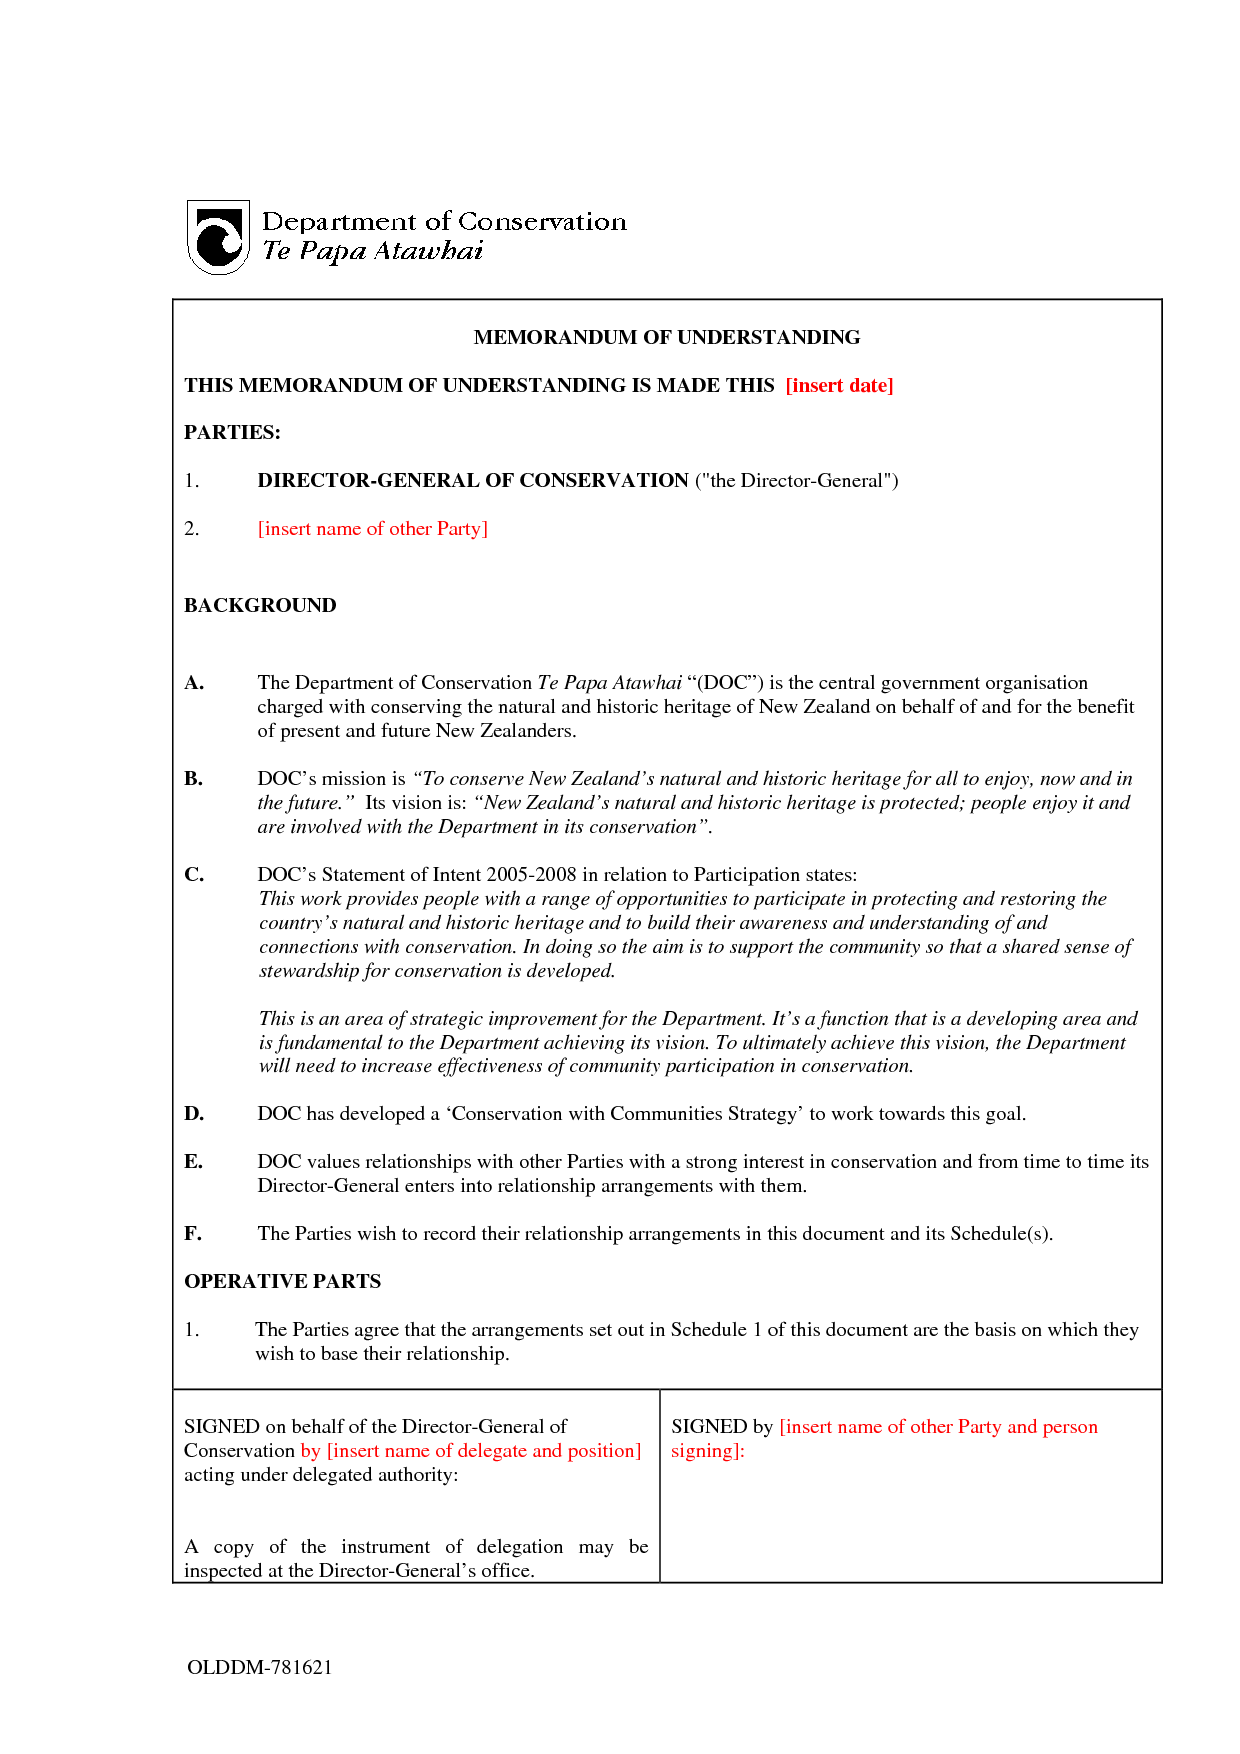 mou sample invitation templates memorandum of understanding sample